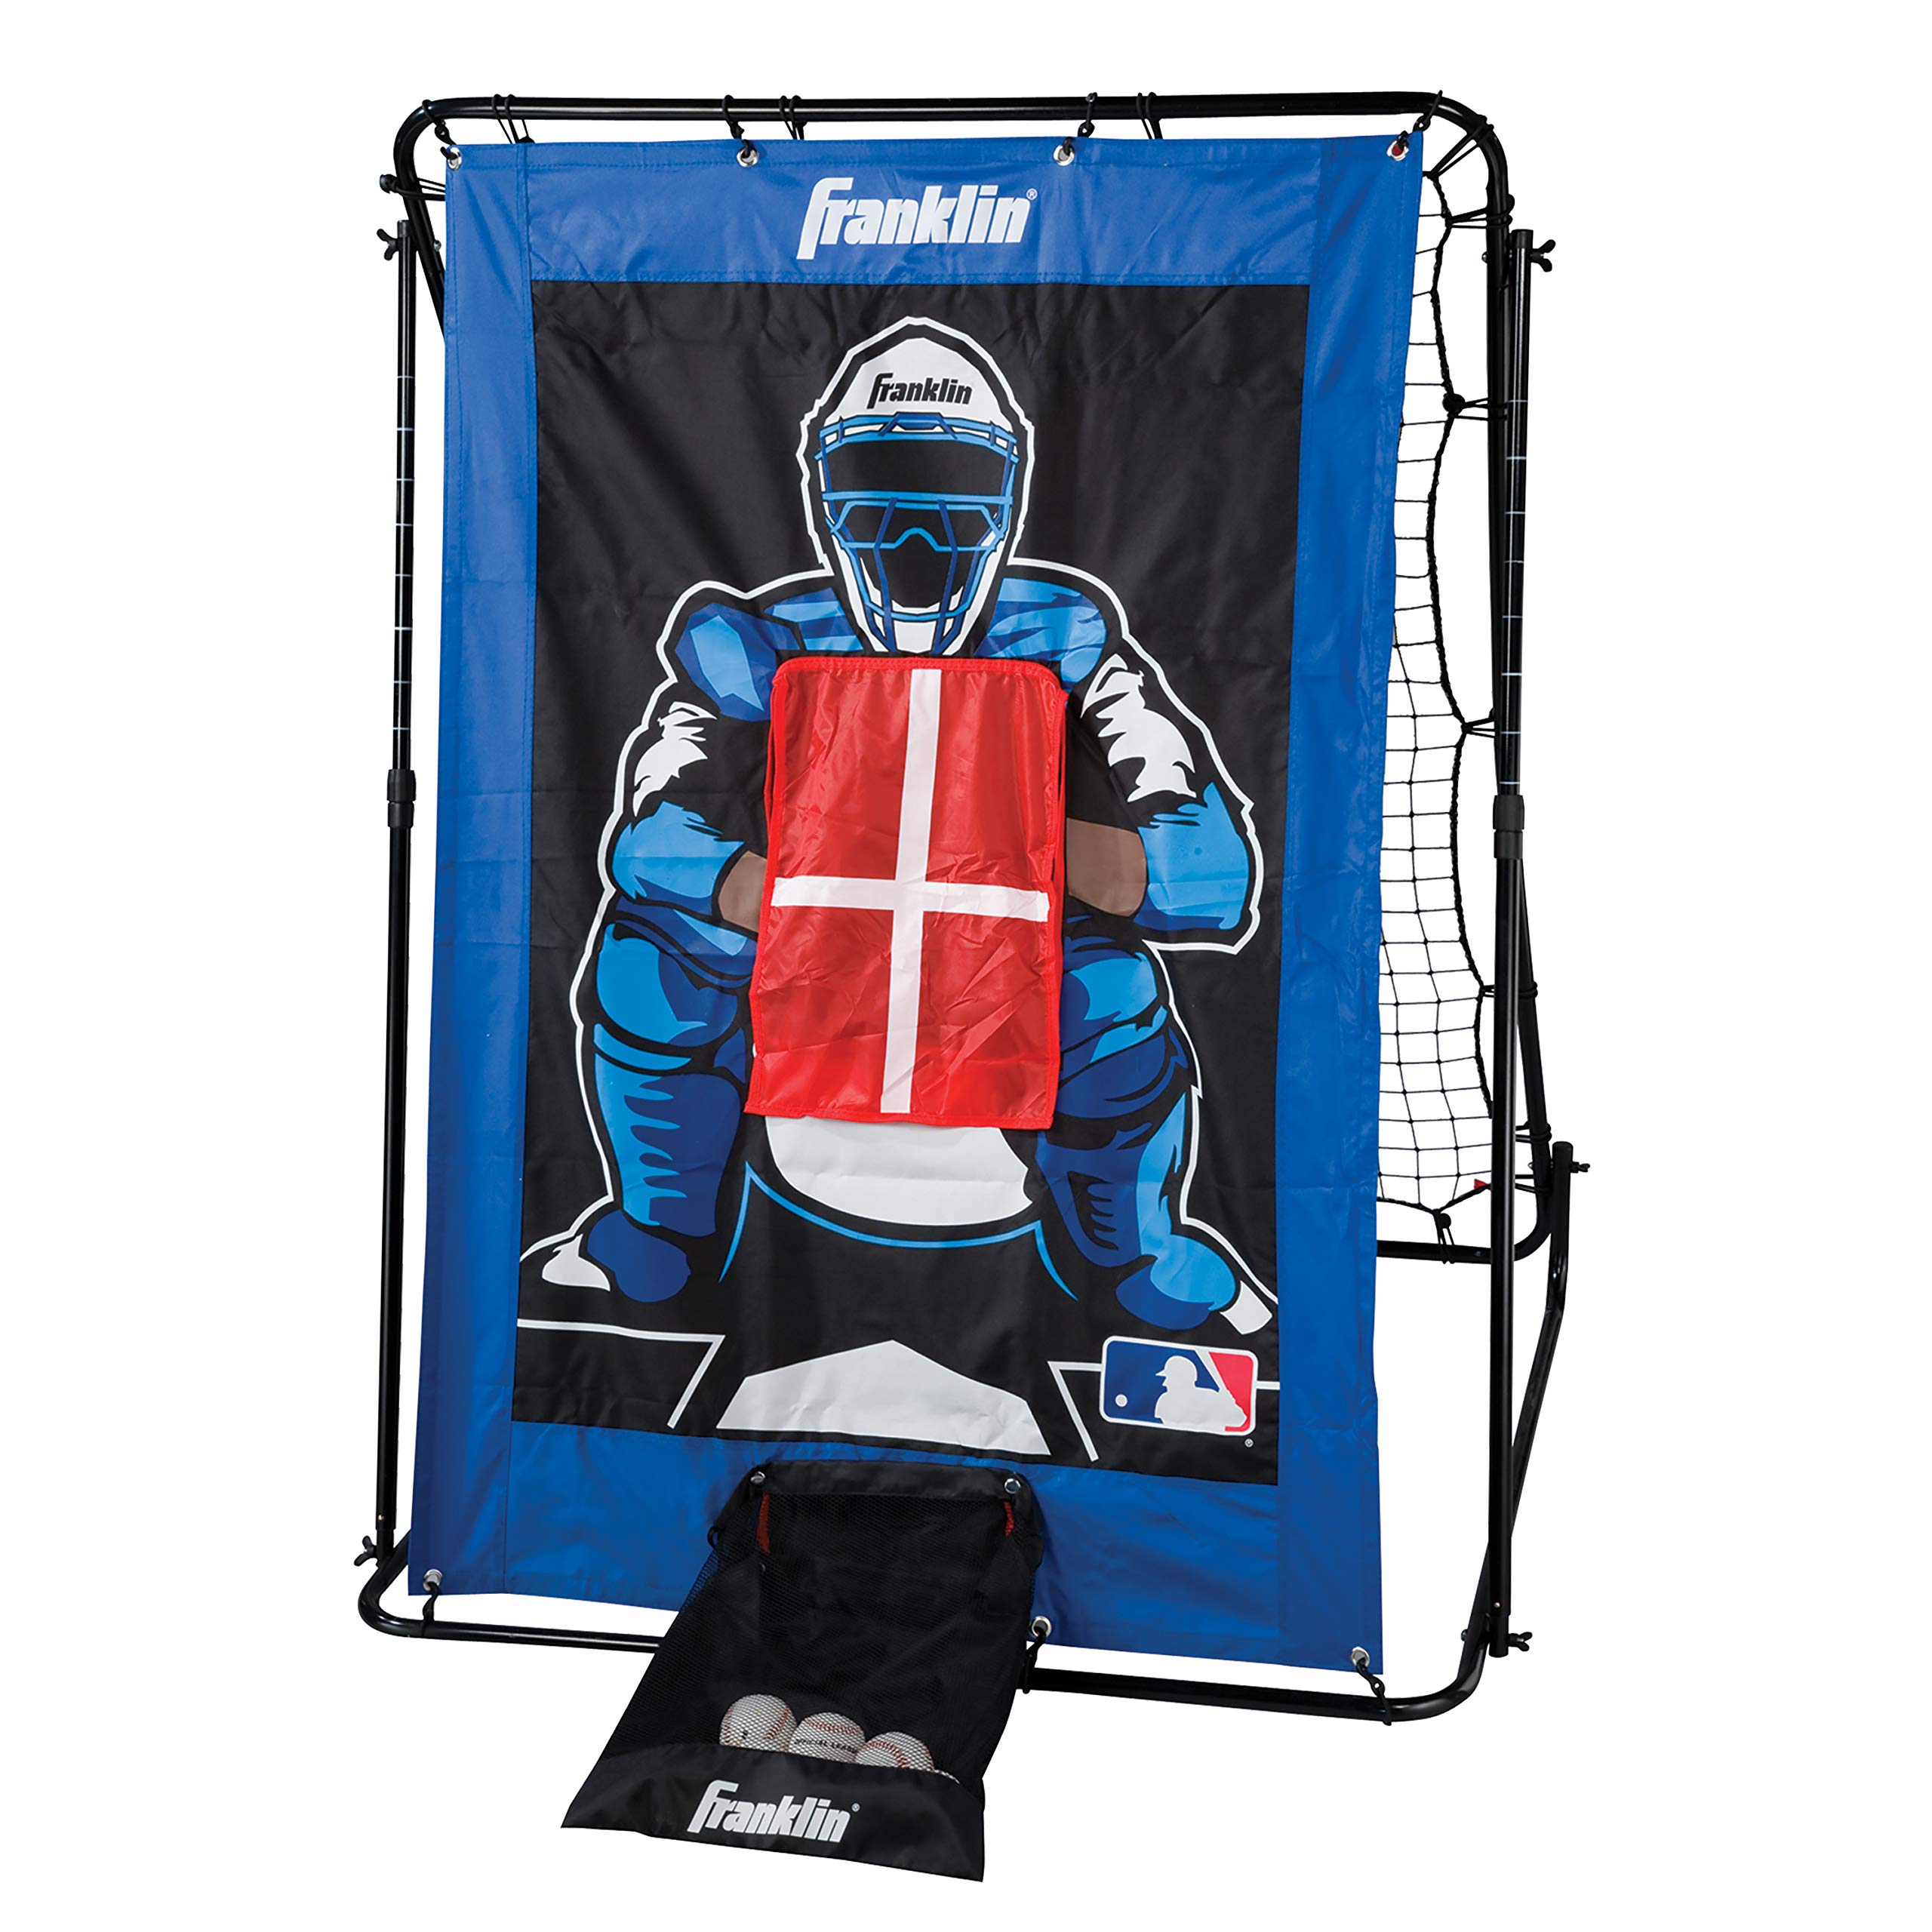 Franklin Sports Pitch Back Baseball Rebounder and Pitching Target - 2 in 1 Return Trainer and Catcher Target - Great for Practices by Franklin Sports